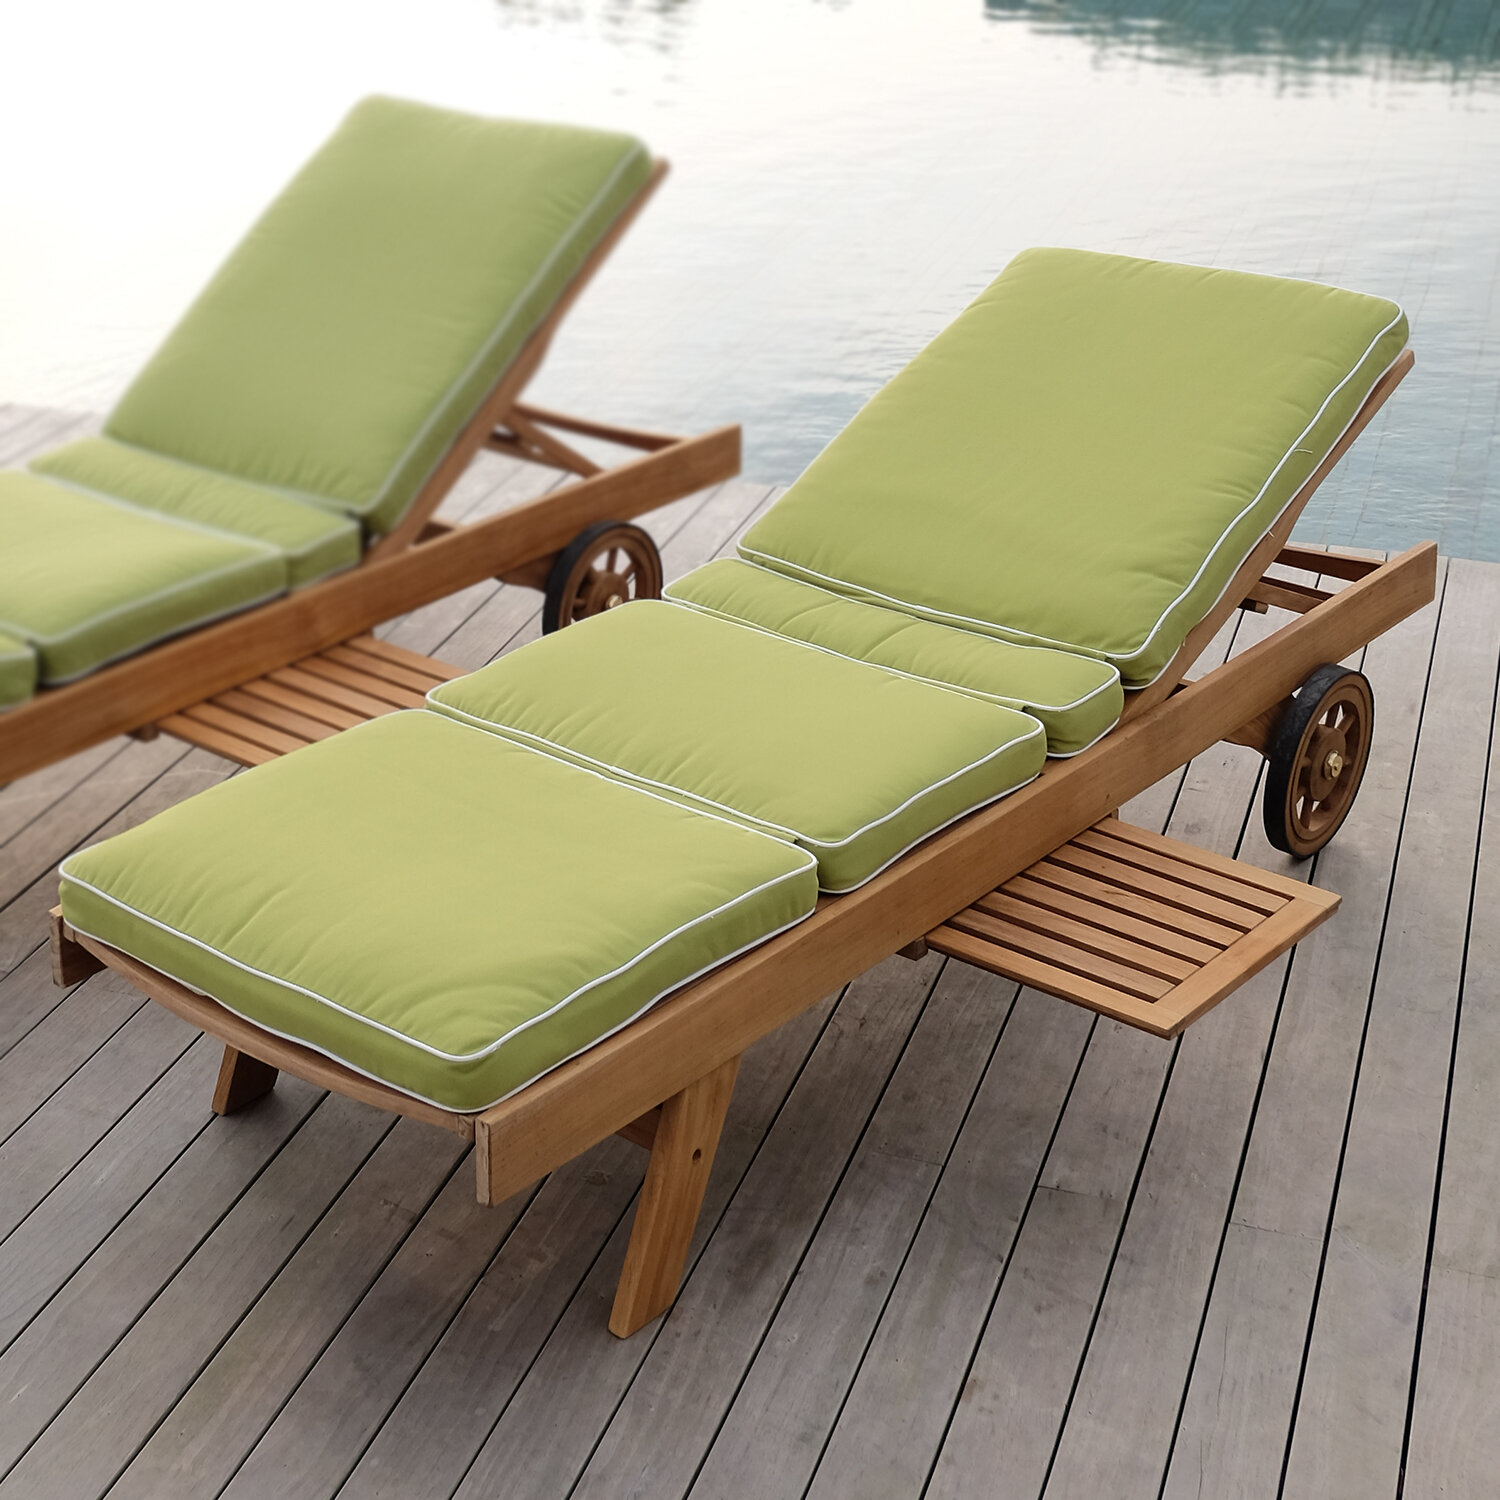 Details about Cambridge Casual Summerton Reclining Teak Chaise Lounge on teak wood lounge chair, teak sling chaise lounge, double patio lounge chair, teak cocktail table, teak dining chair, teak pool lounge chairs, teak vanity chair, teak bentwood lounge chair, teak dining set, teak recliner chair, teak club chair, teak chaise lounge with cushion, teak steamer lounge chair, teak barcelona chair, teak outdoor chaise, teak double chaise lounge, teak ottomans chair, teak outdoor lounge chairs, teak chase lounge, teak leather chair,